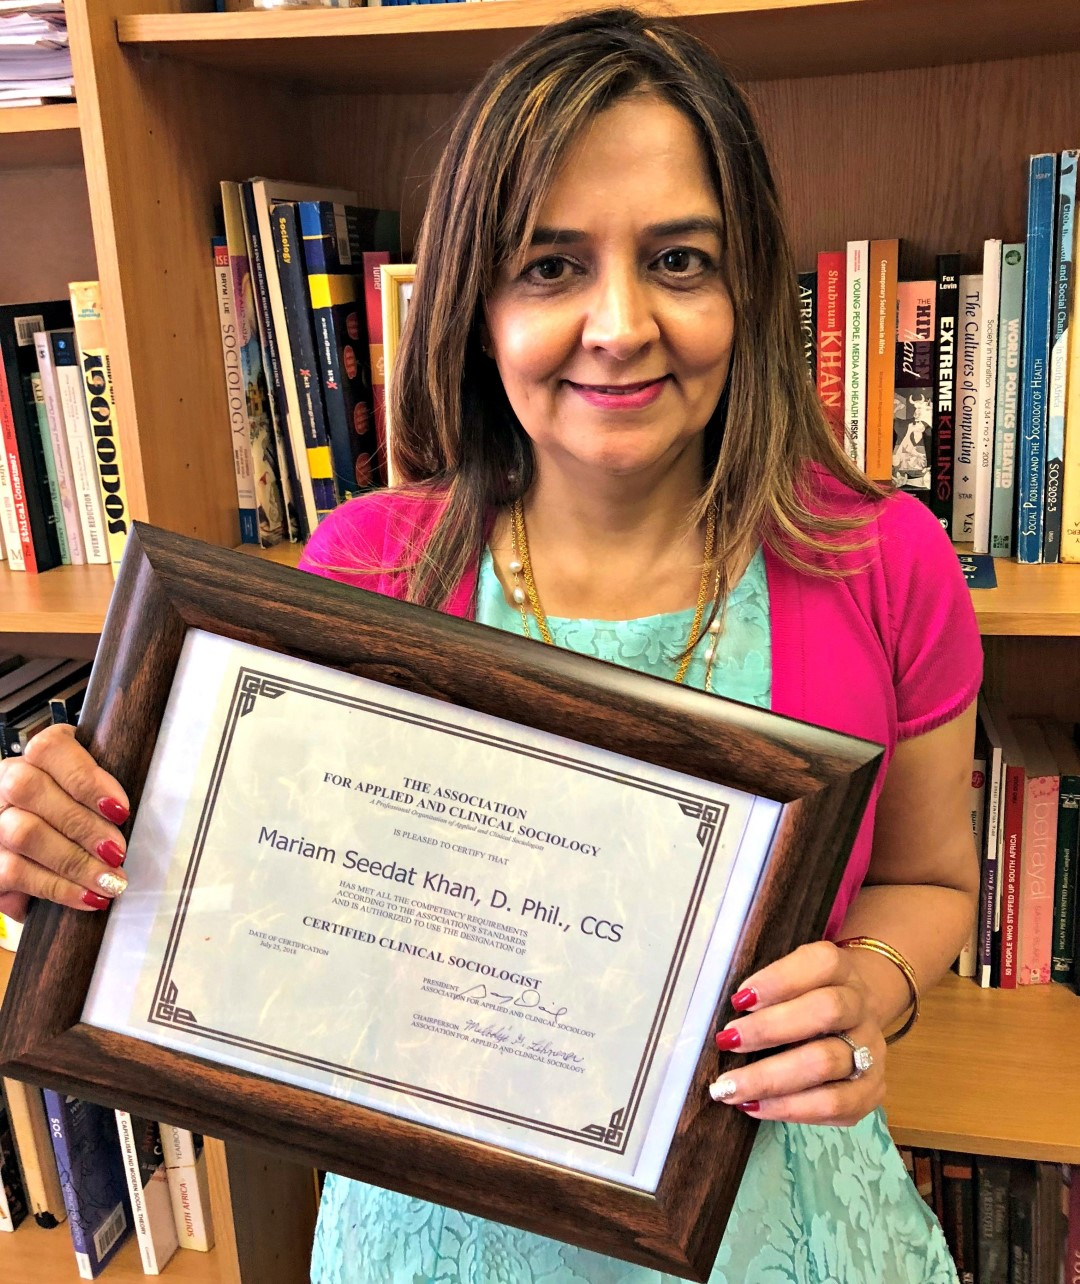 Academic Becomes One of 25 Certified Clinical Sociologists in the World